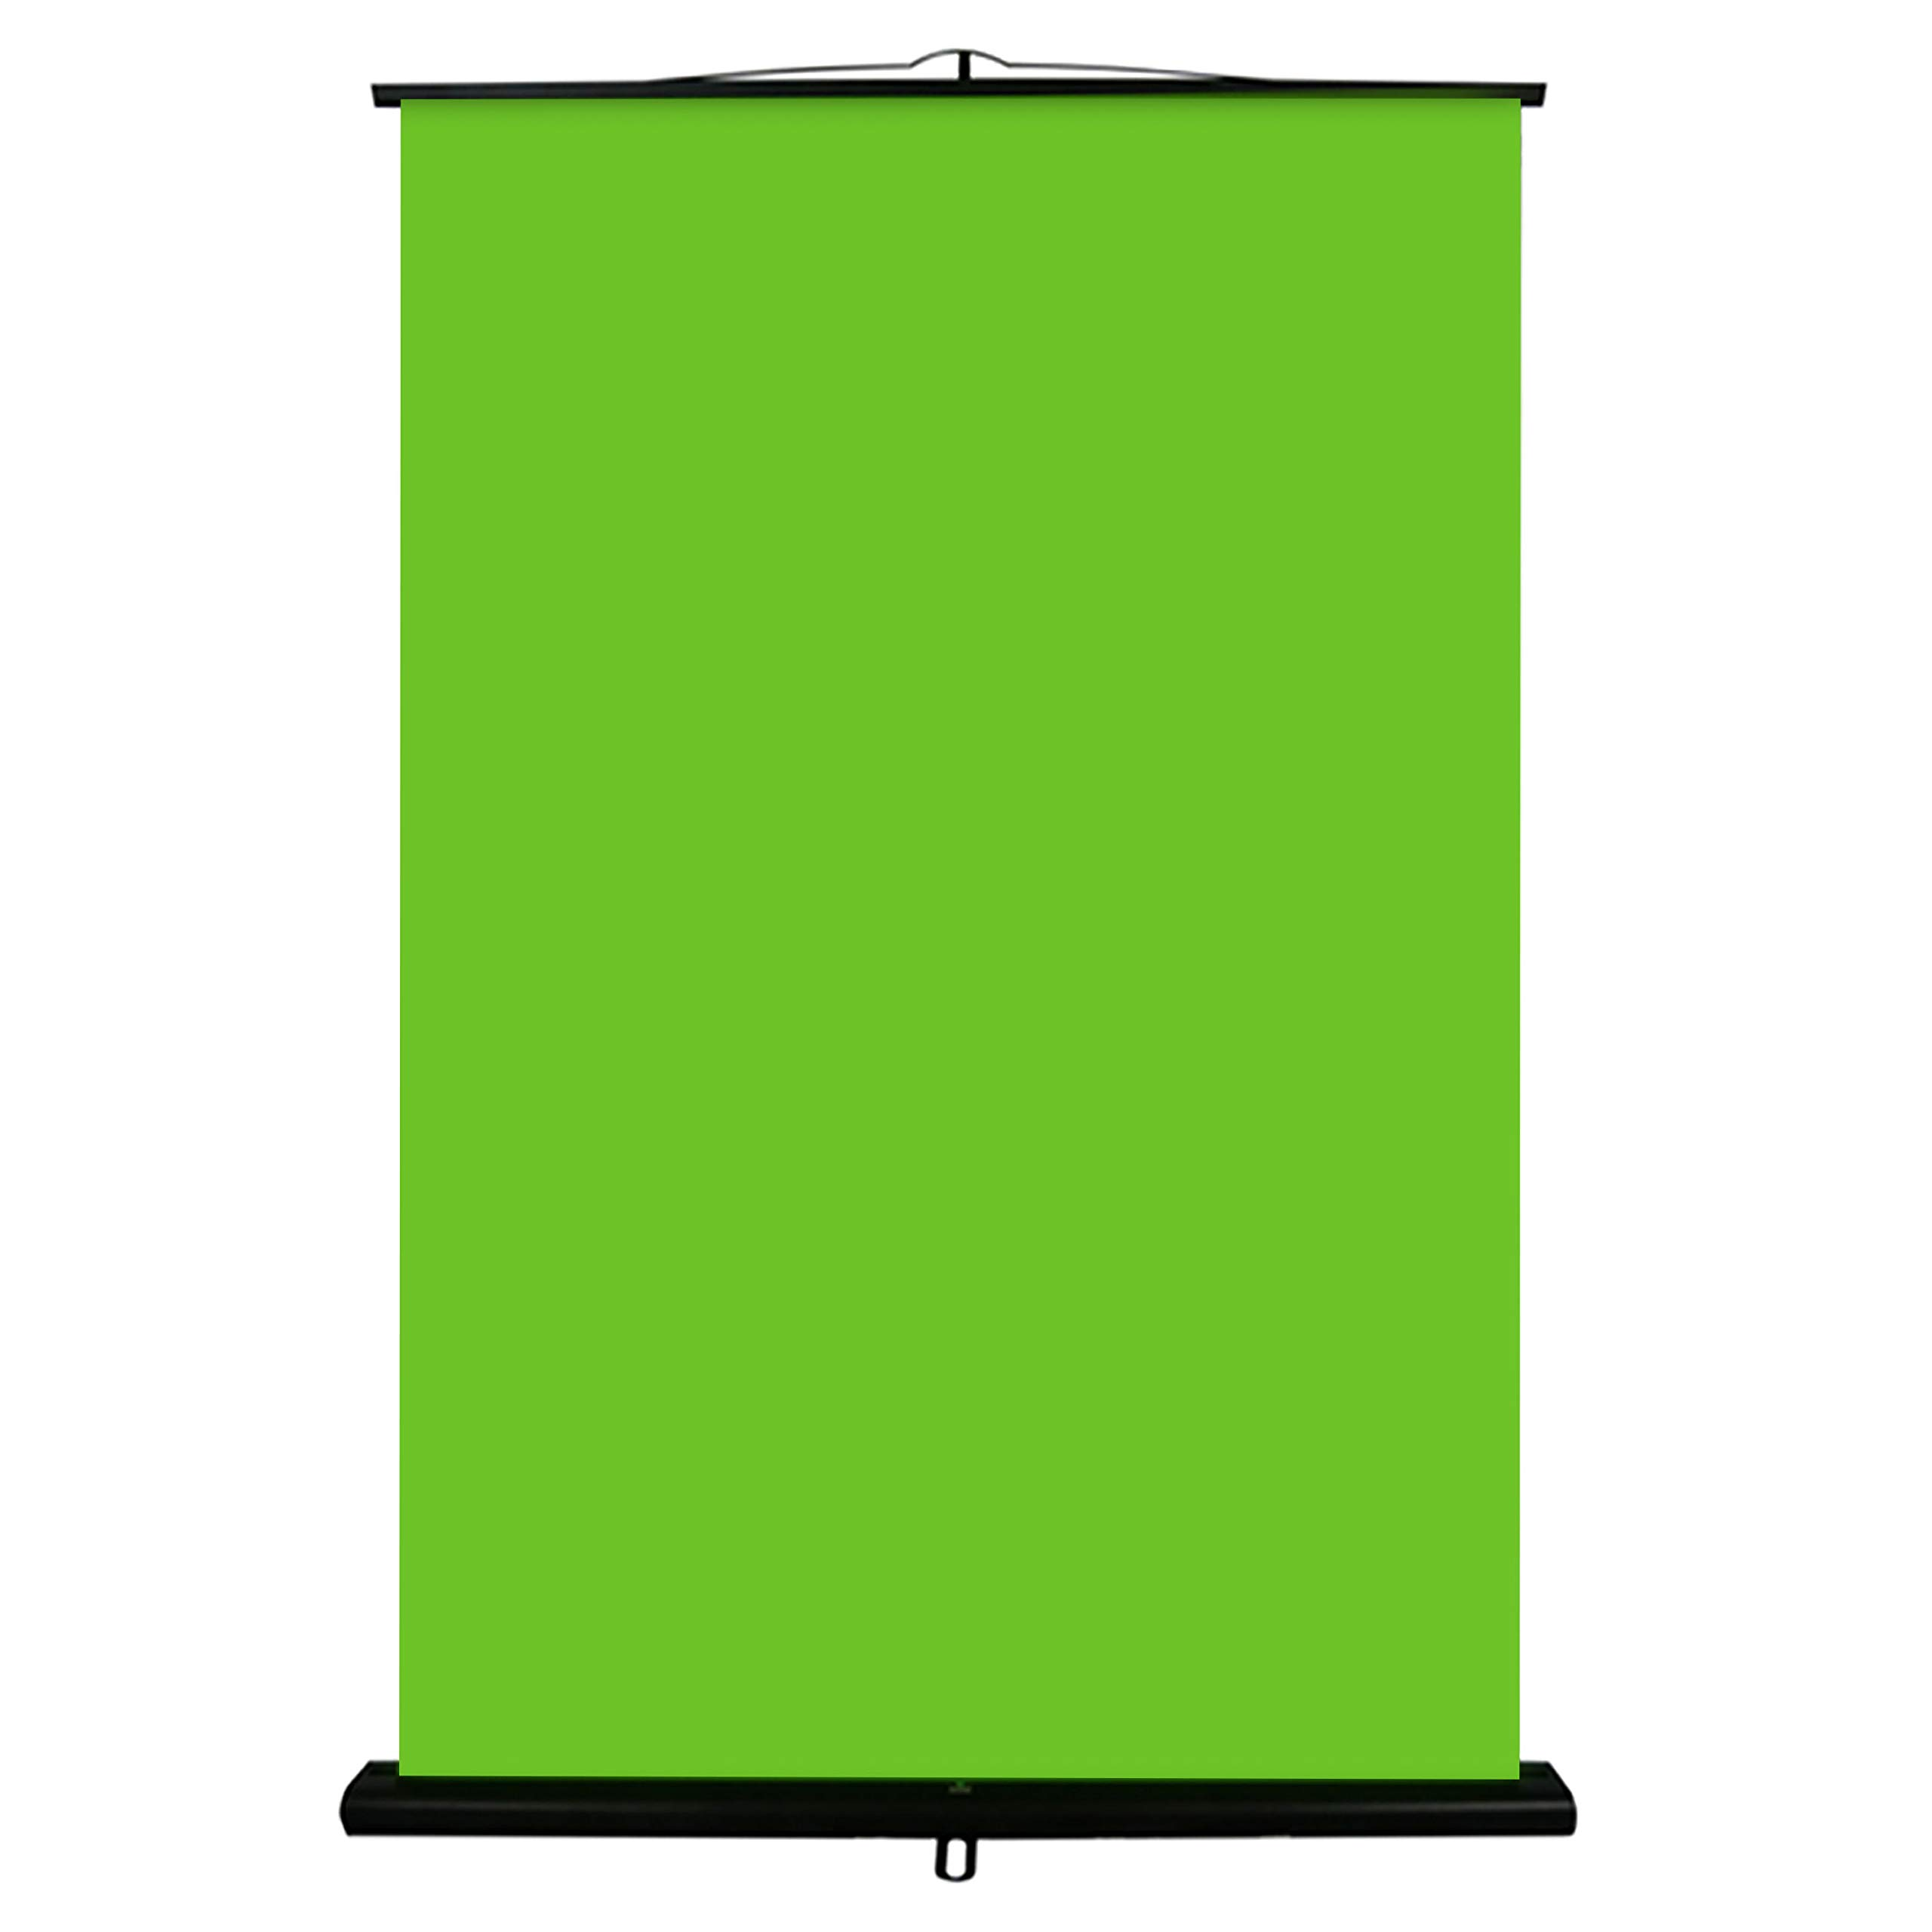 Valera Creator 95: Collapsible Green Screen for Streaming | 75'' x 58'' Screen Area | 11 lbs - Lightest in-Class | 10 Second Setup | Chroma Key Wrinkle Resistant Screen | Works in Low Light Conditions by On the Go Screens